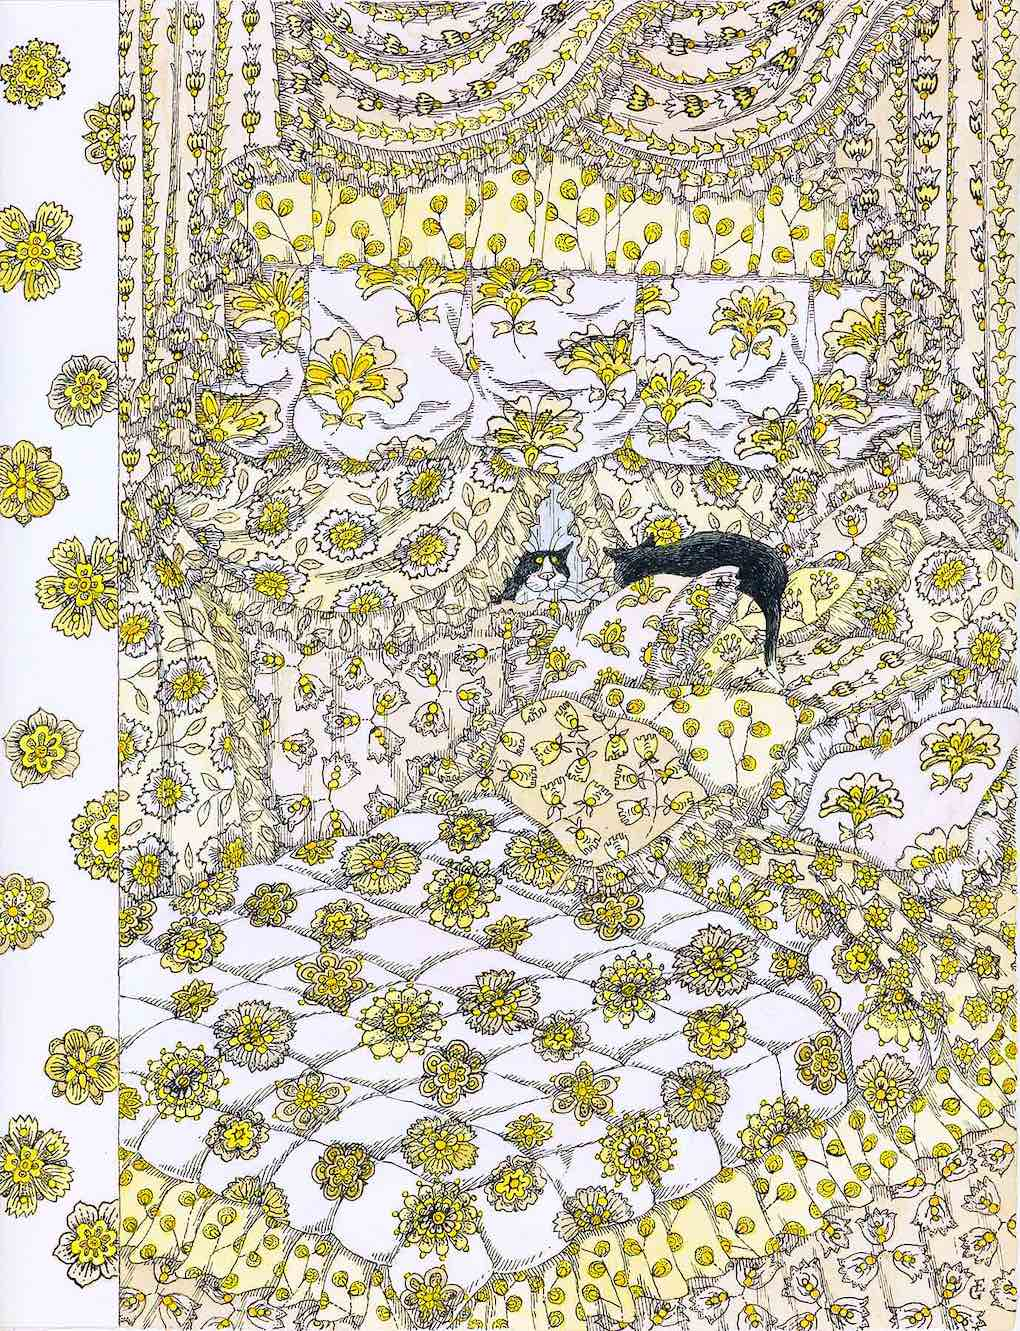 Edward Gorey, cats in a giant bed